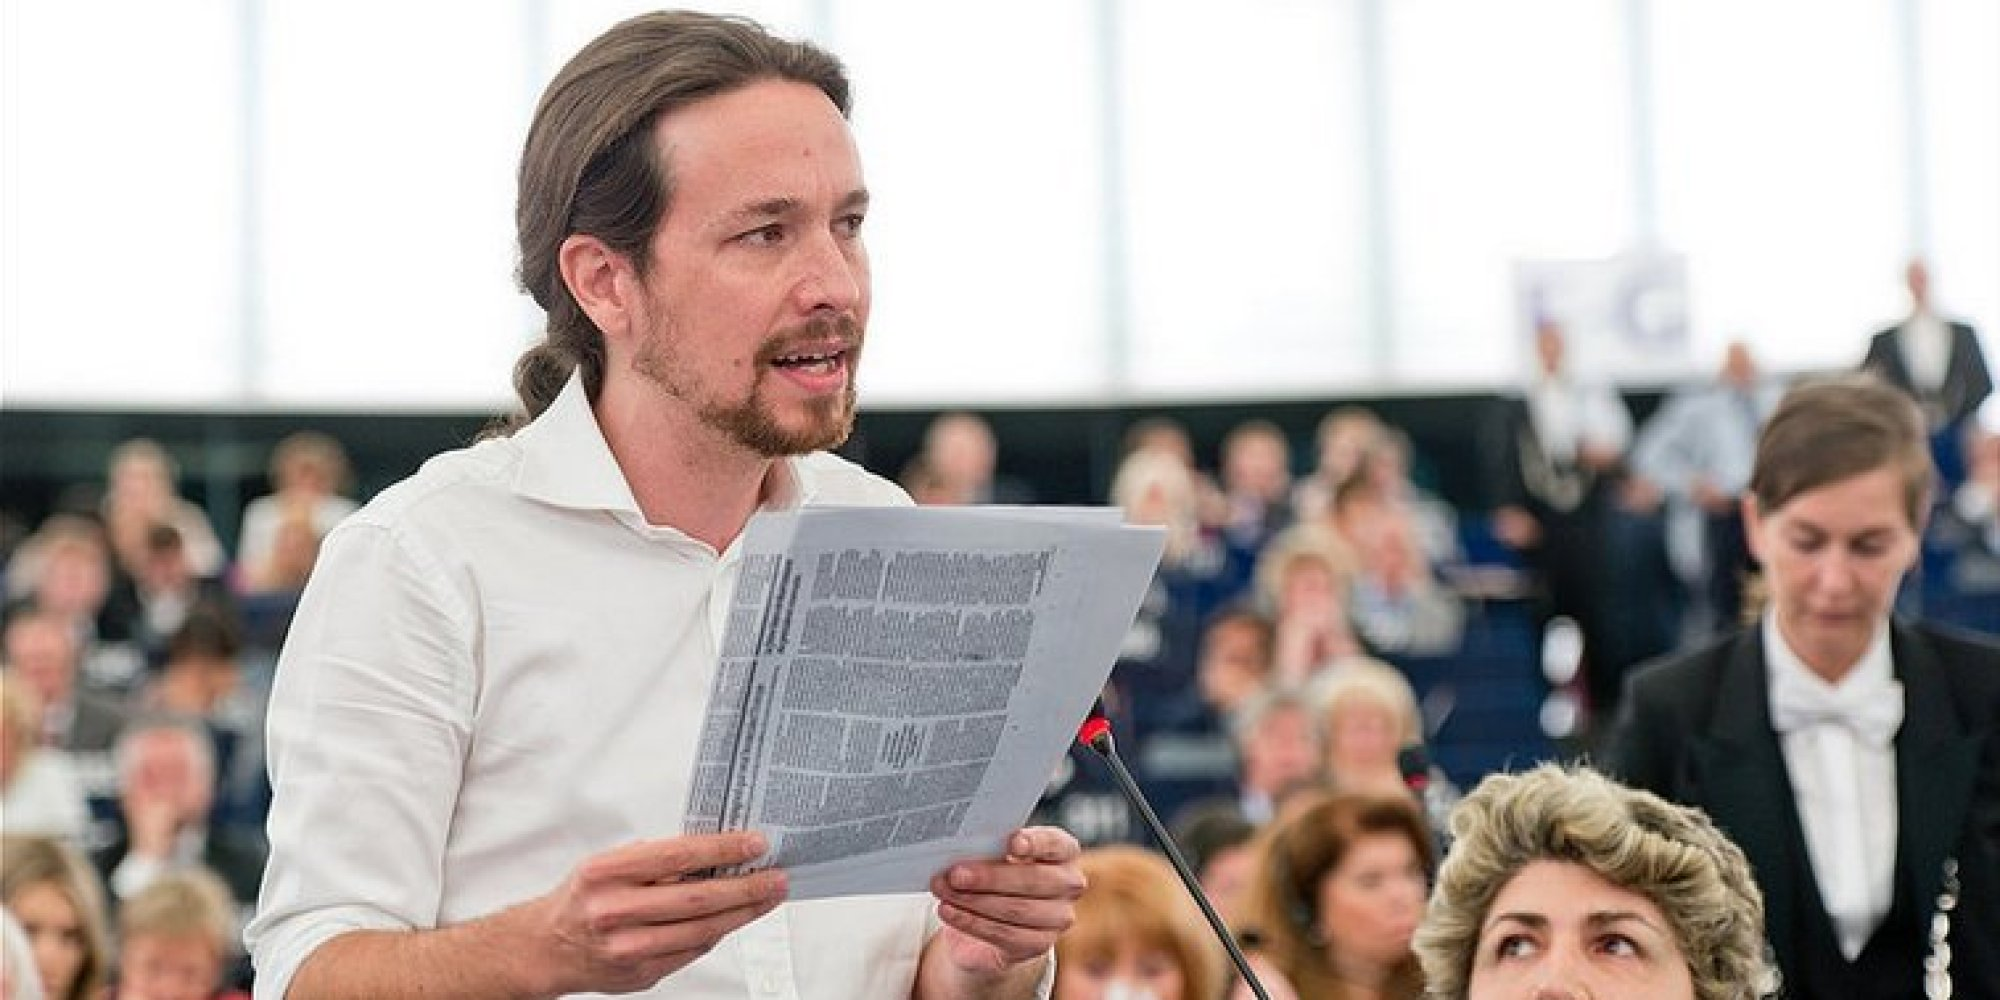 pablo Iglesias entrevistado en New Left Review